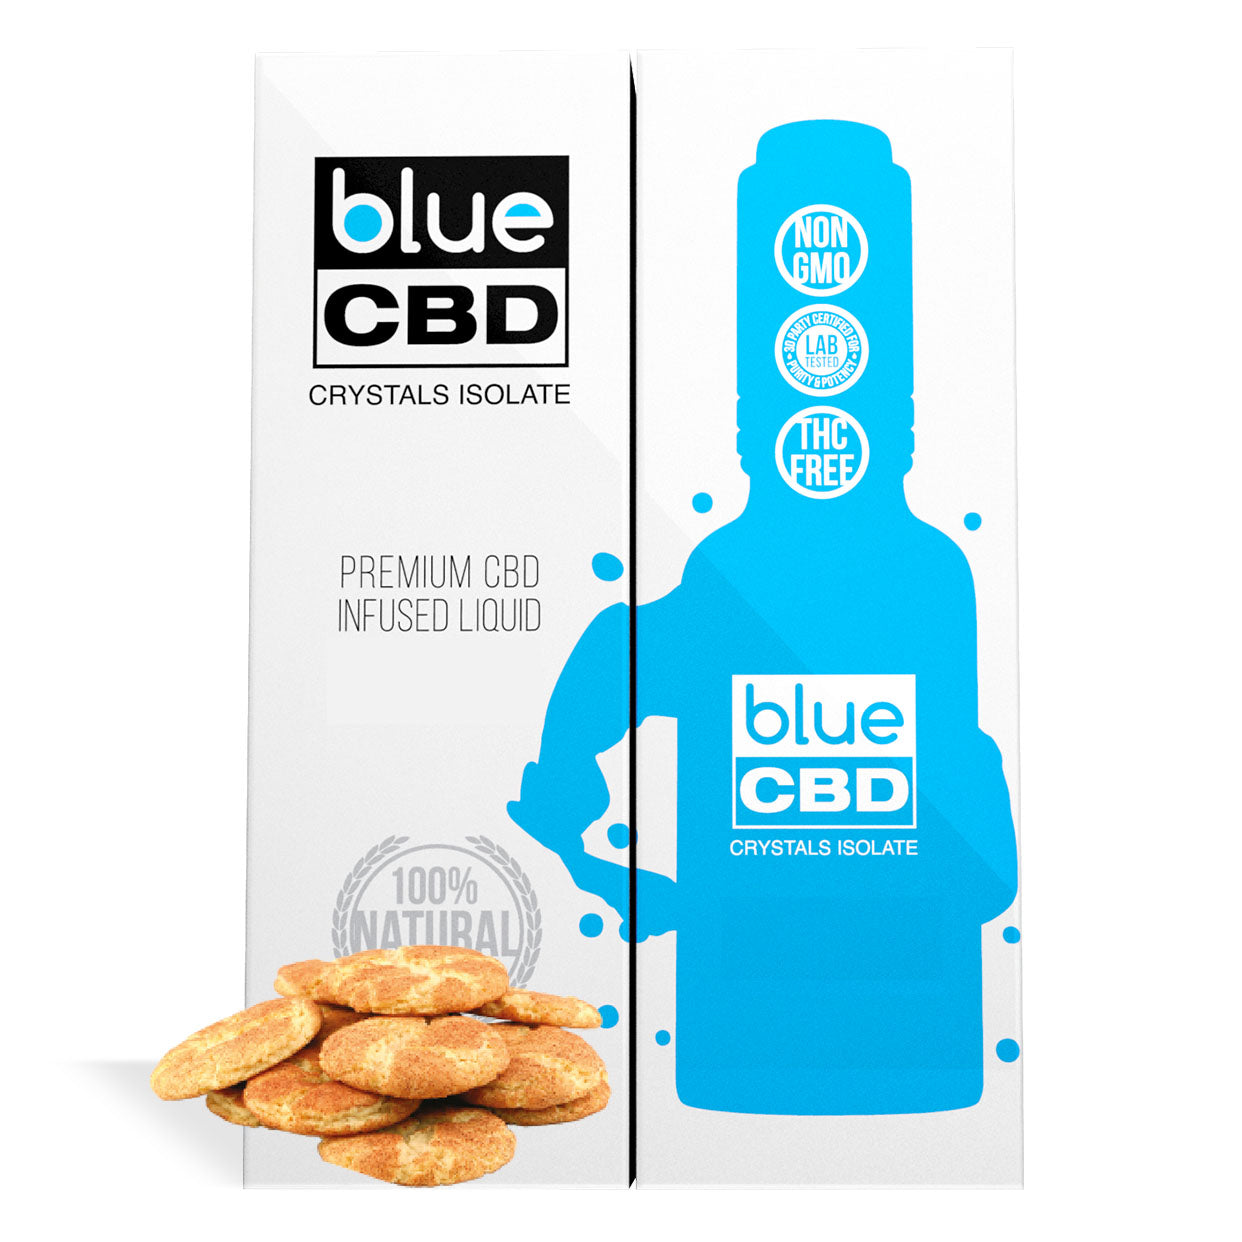 Snickerdoodle Flavor Blue CBD Crystal Isolate - My CBD Mall